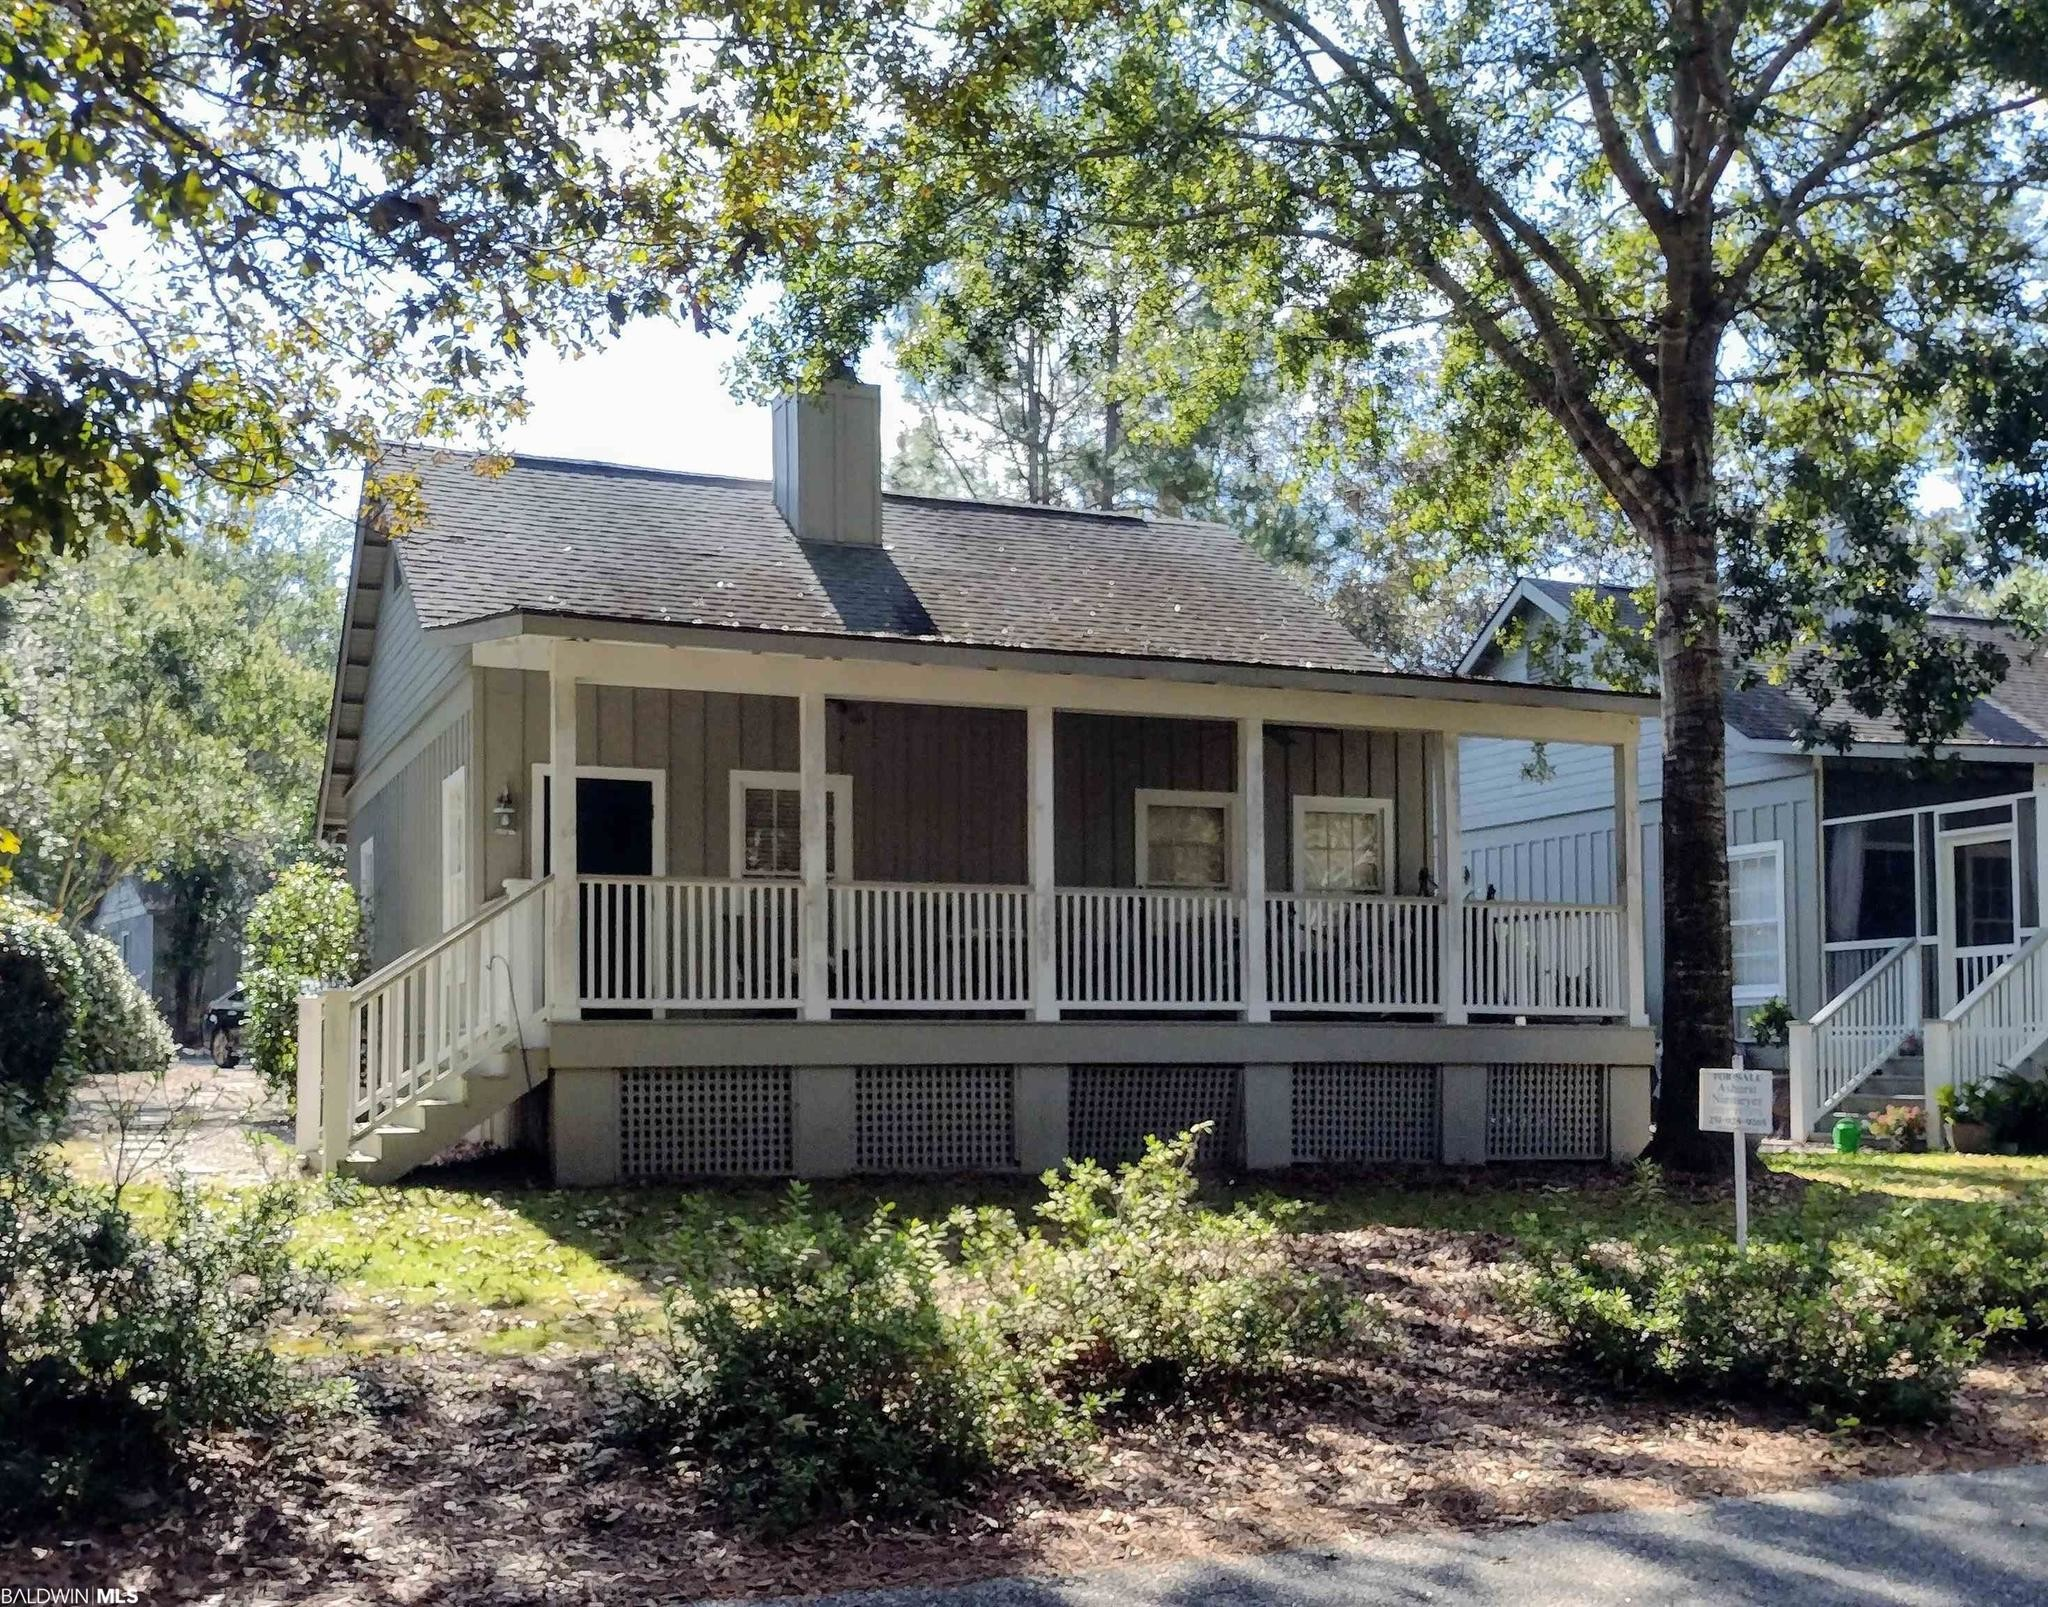 2-Bedroom House In The Cabins At Steelwood